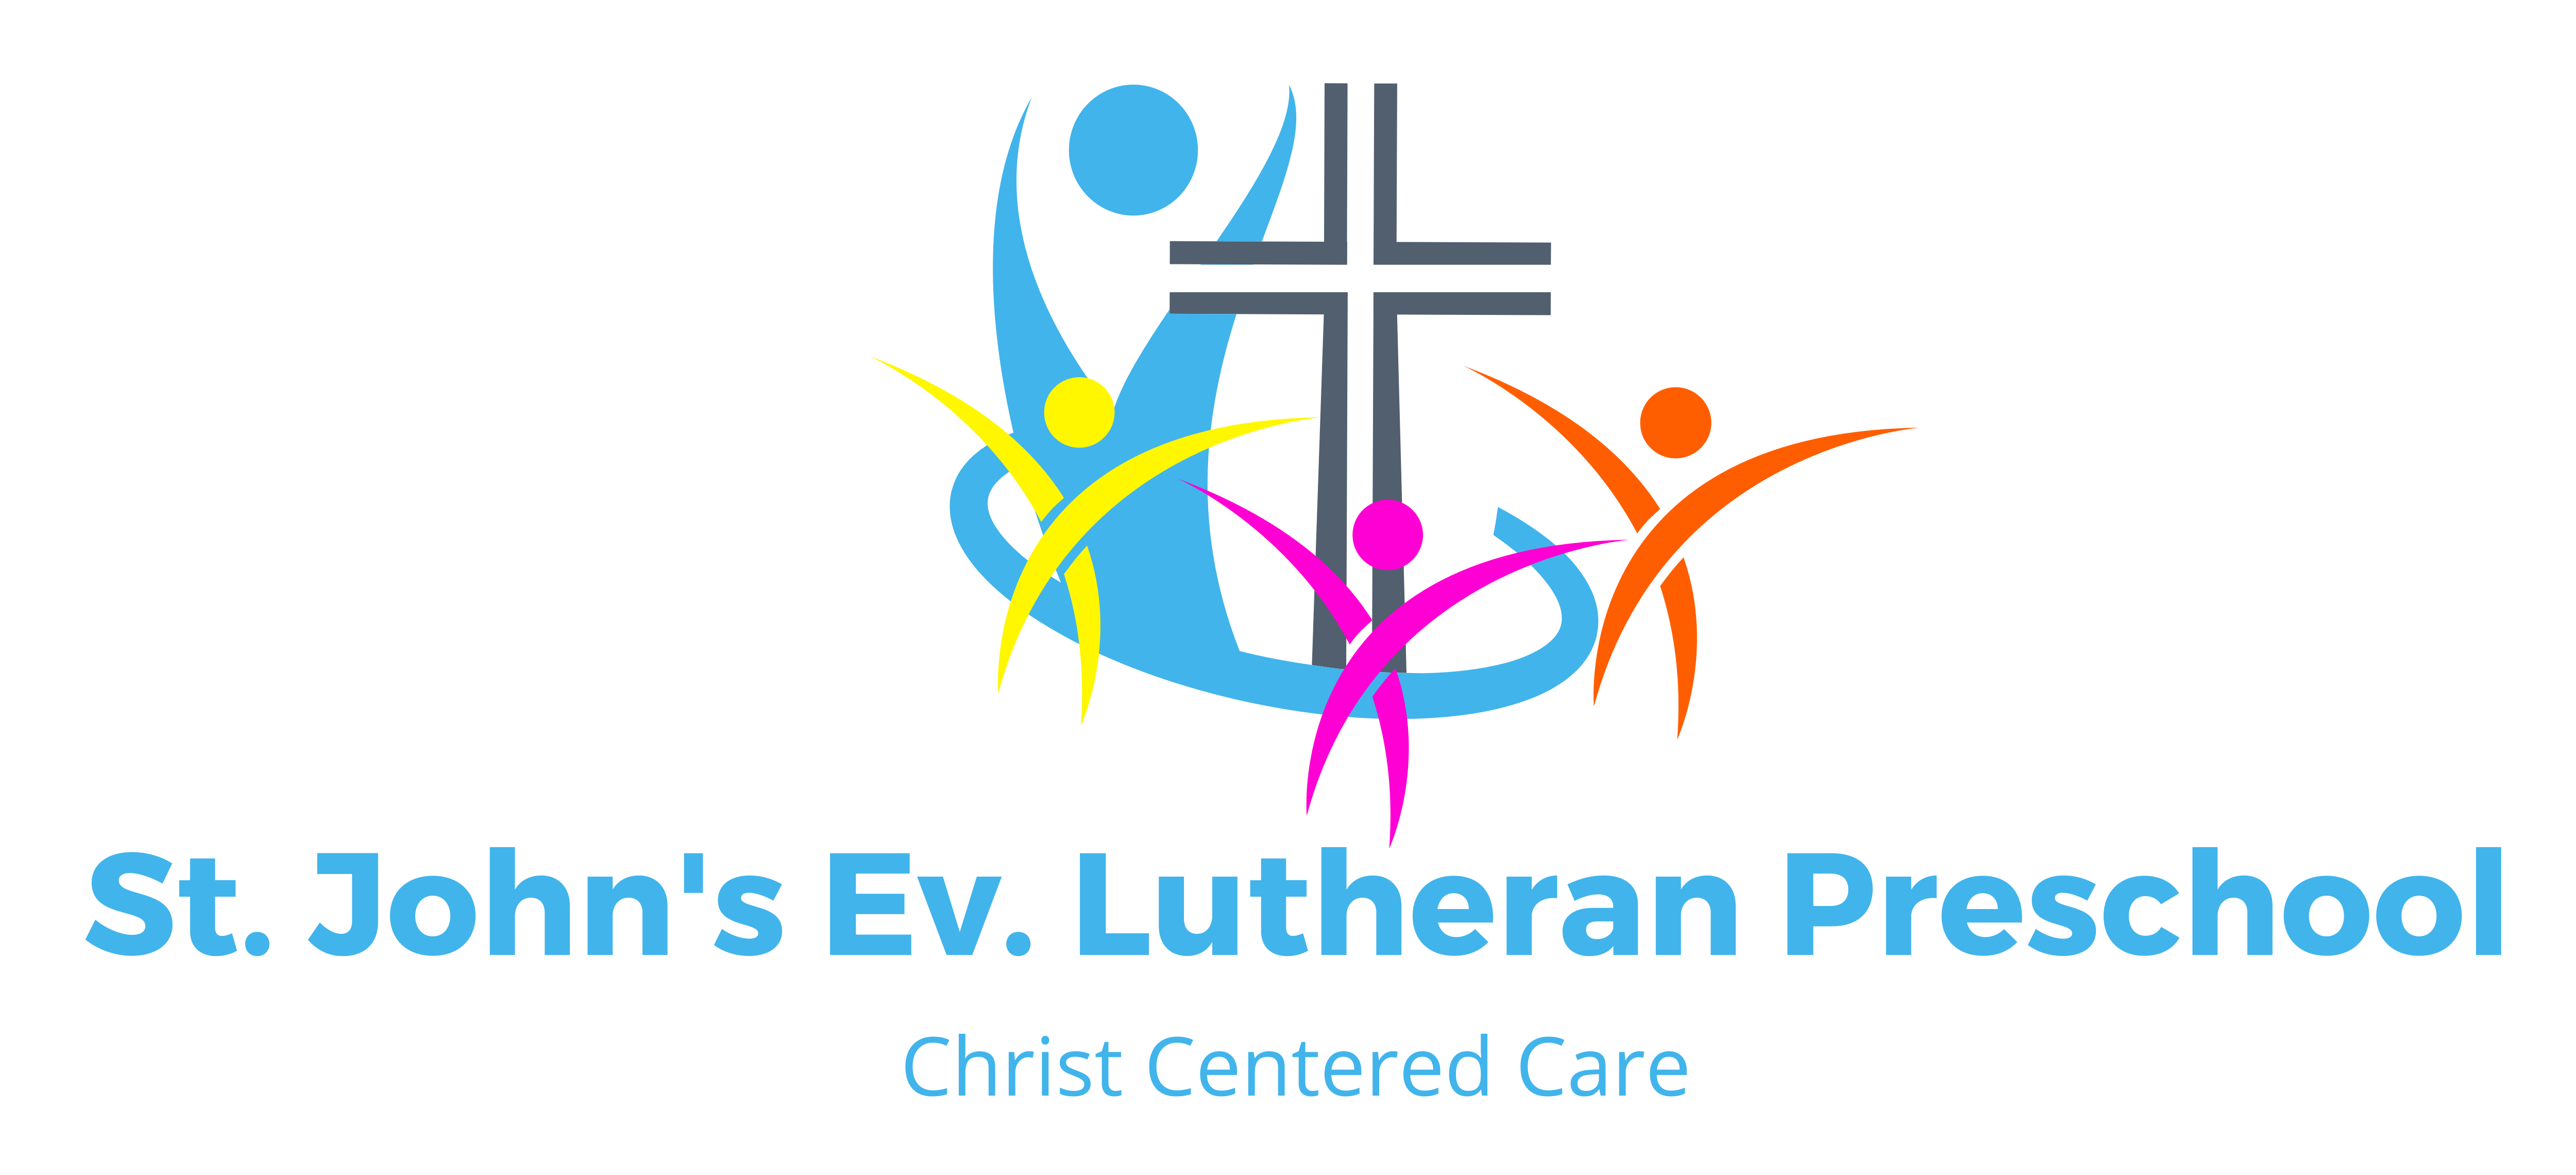 St. Johns Ev. Lutheran Preschool